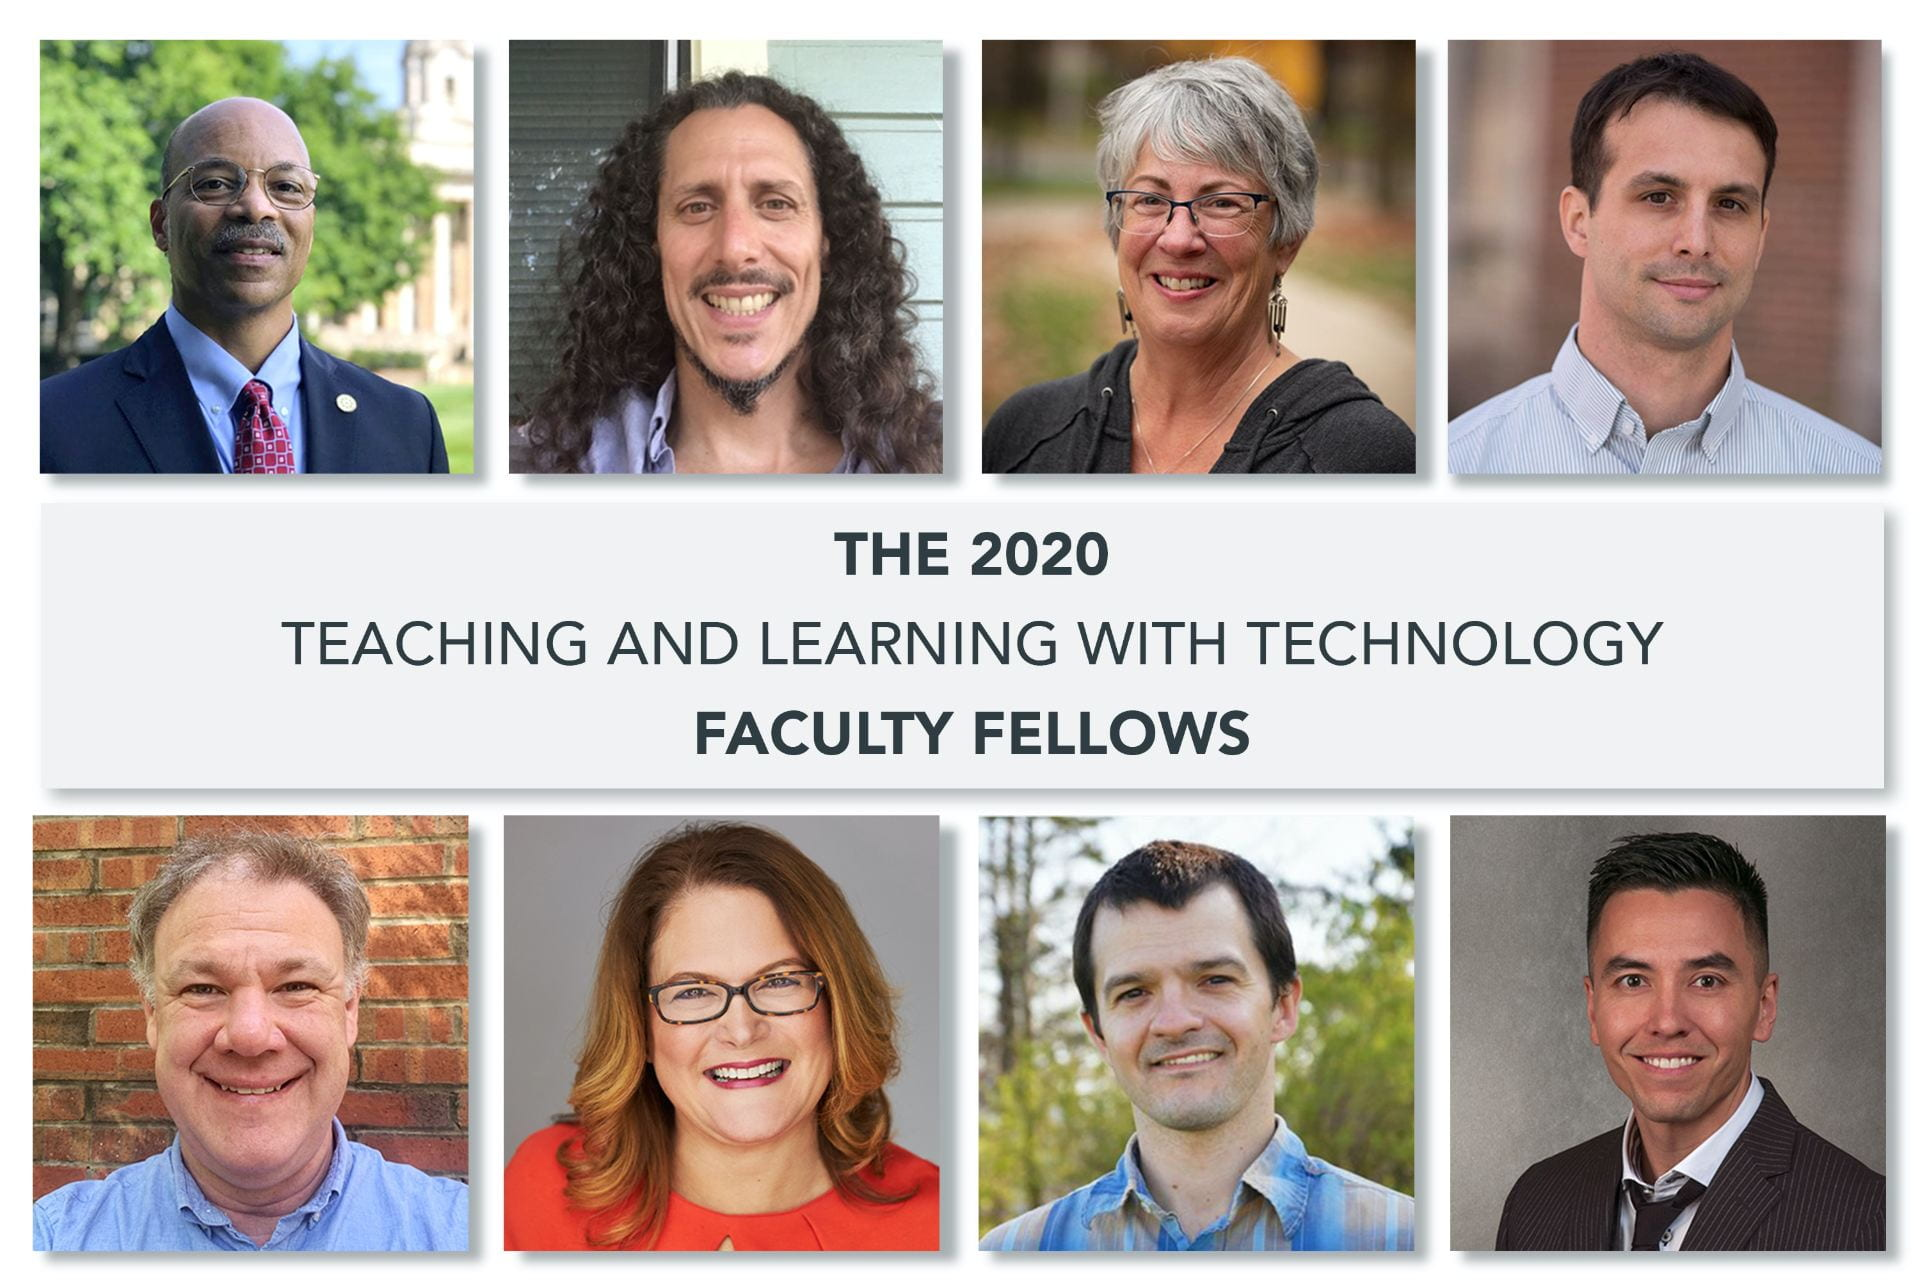 Teaching and Learning with Technology welcomes newest faculty fellows cohort